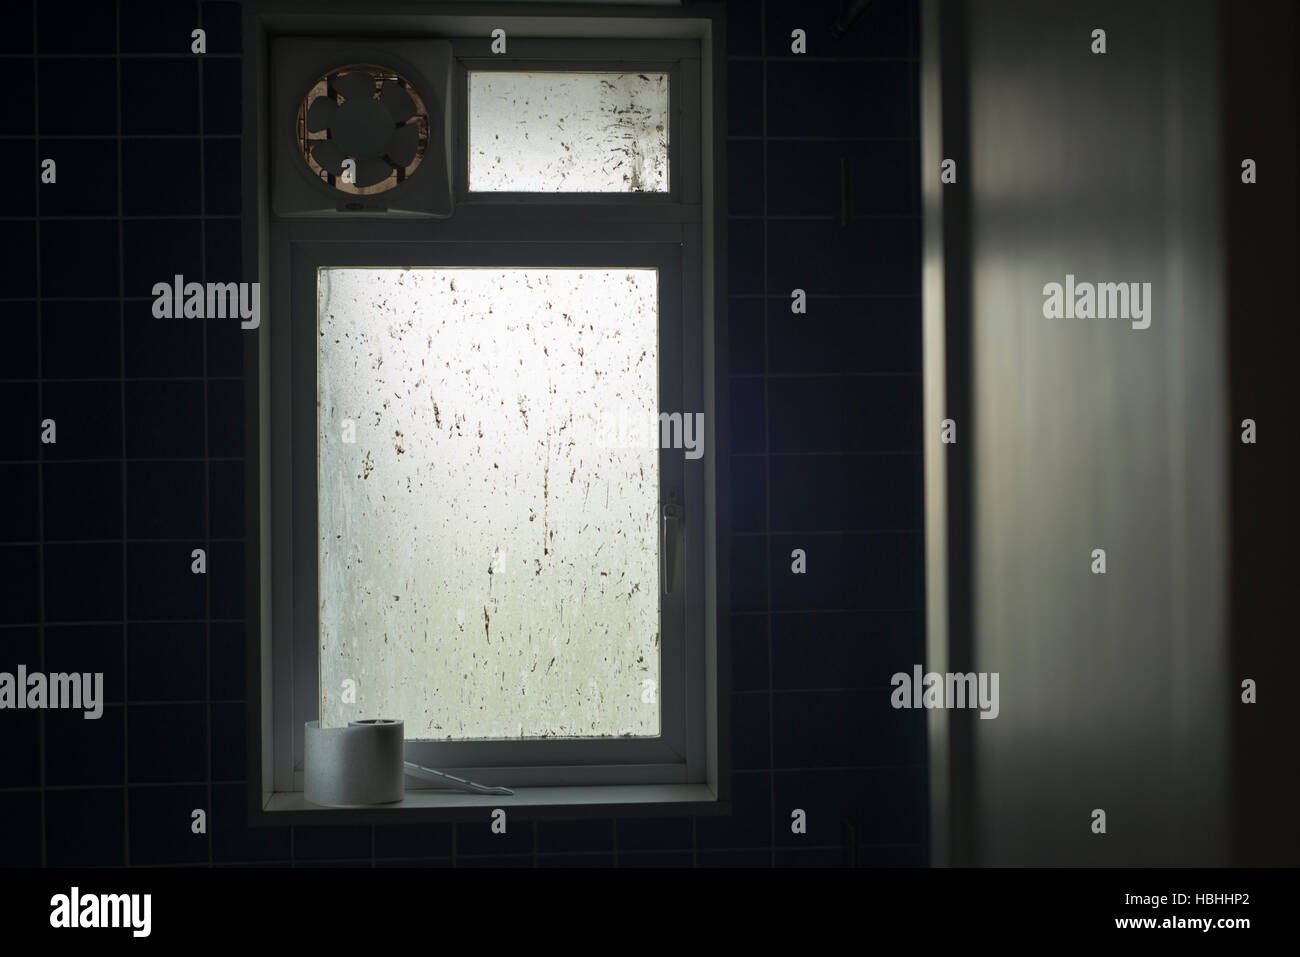 Toilet Paper On Window Sill With Exhaust Fan Stock Photo Alamy